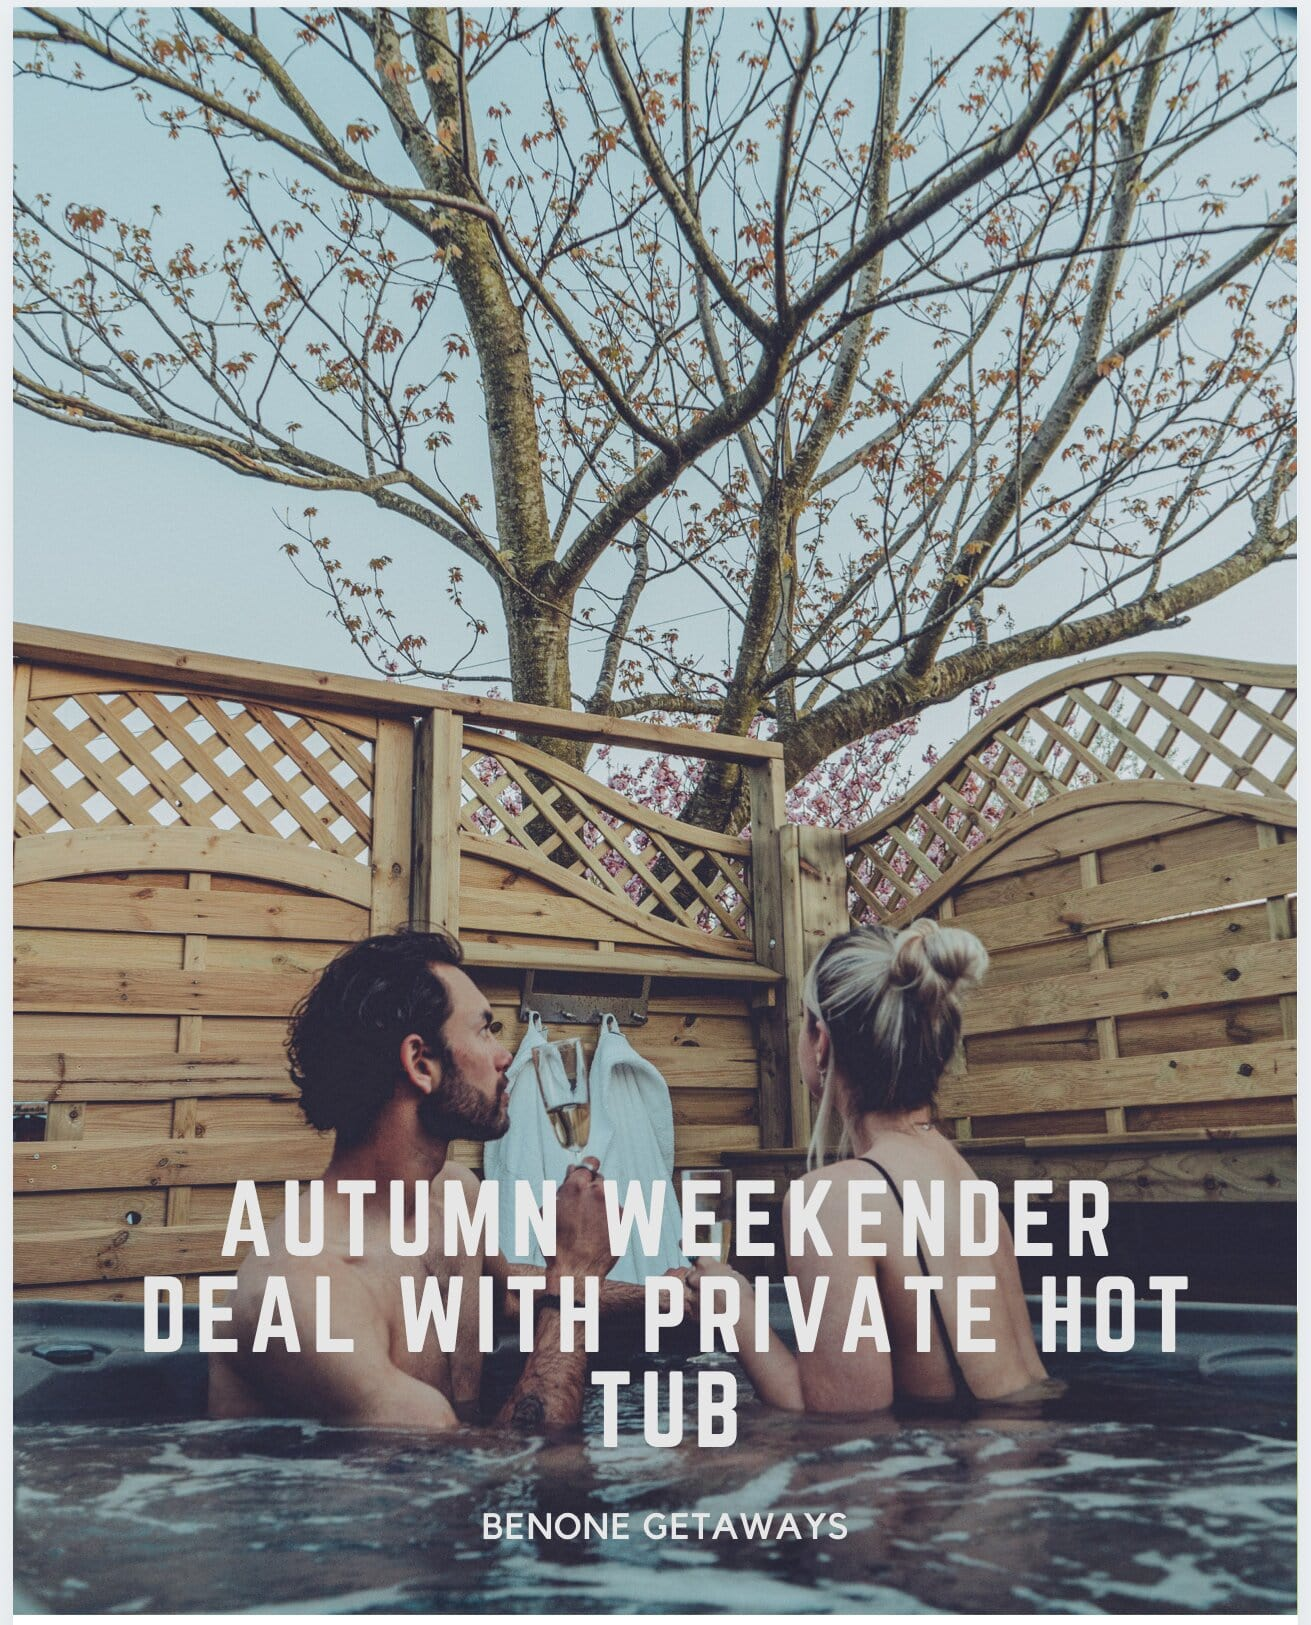 Autumn Weekender Deal with Private Hot Tub